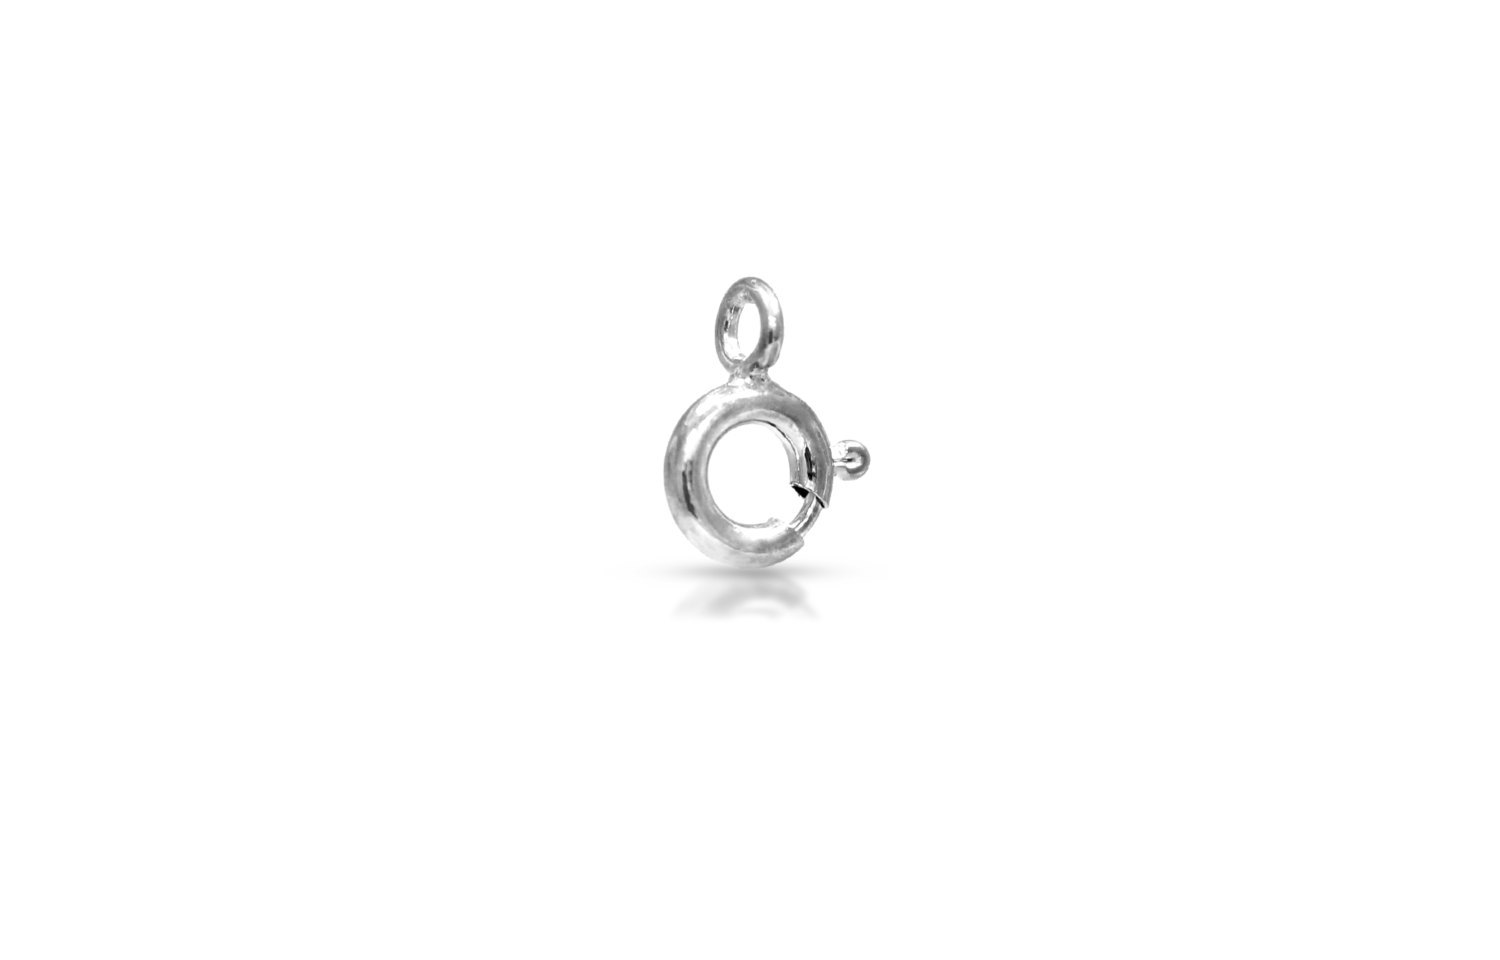 Primary image for Clasps, Spring ring w/ Closed ring, Sterling Silver, 5mm, Pkg Of 20pcs (6114)/1